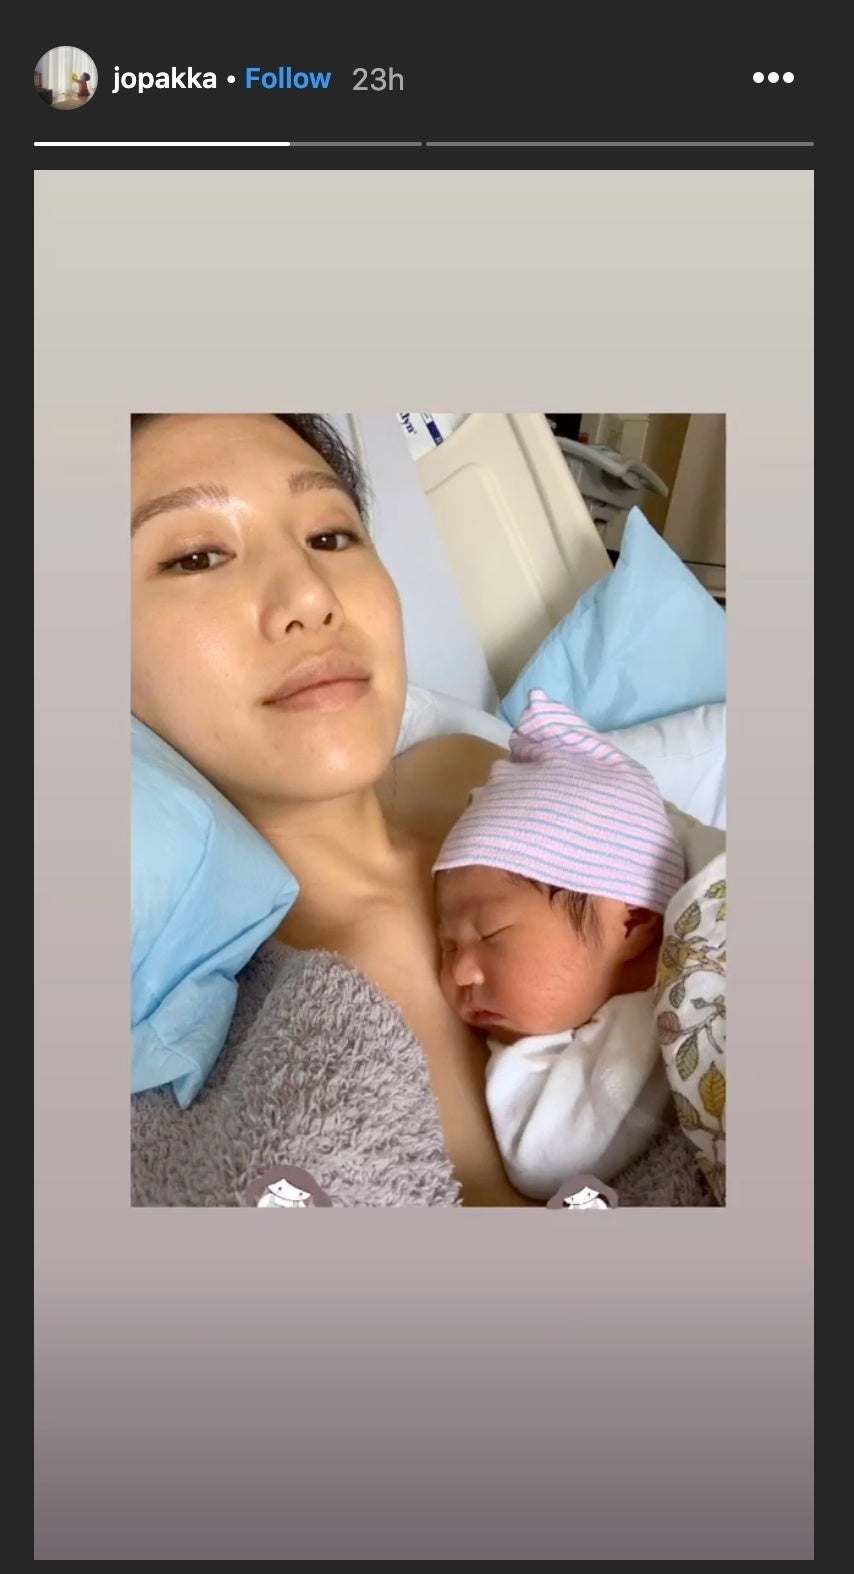 The Walking Dead Star Steven Yeun And His Wife Just Had A